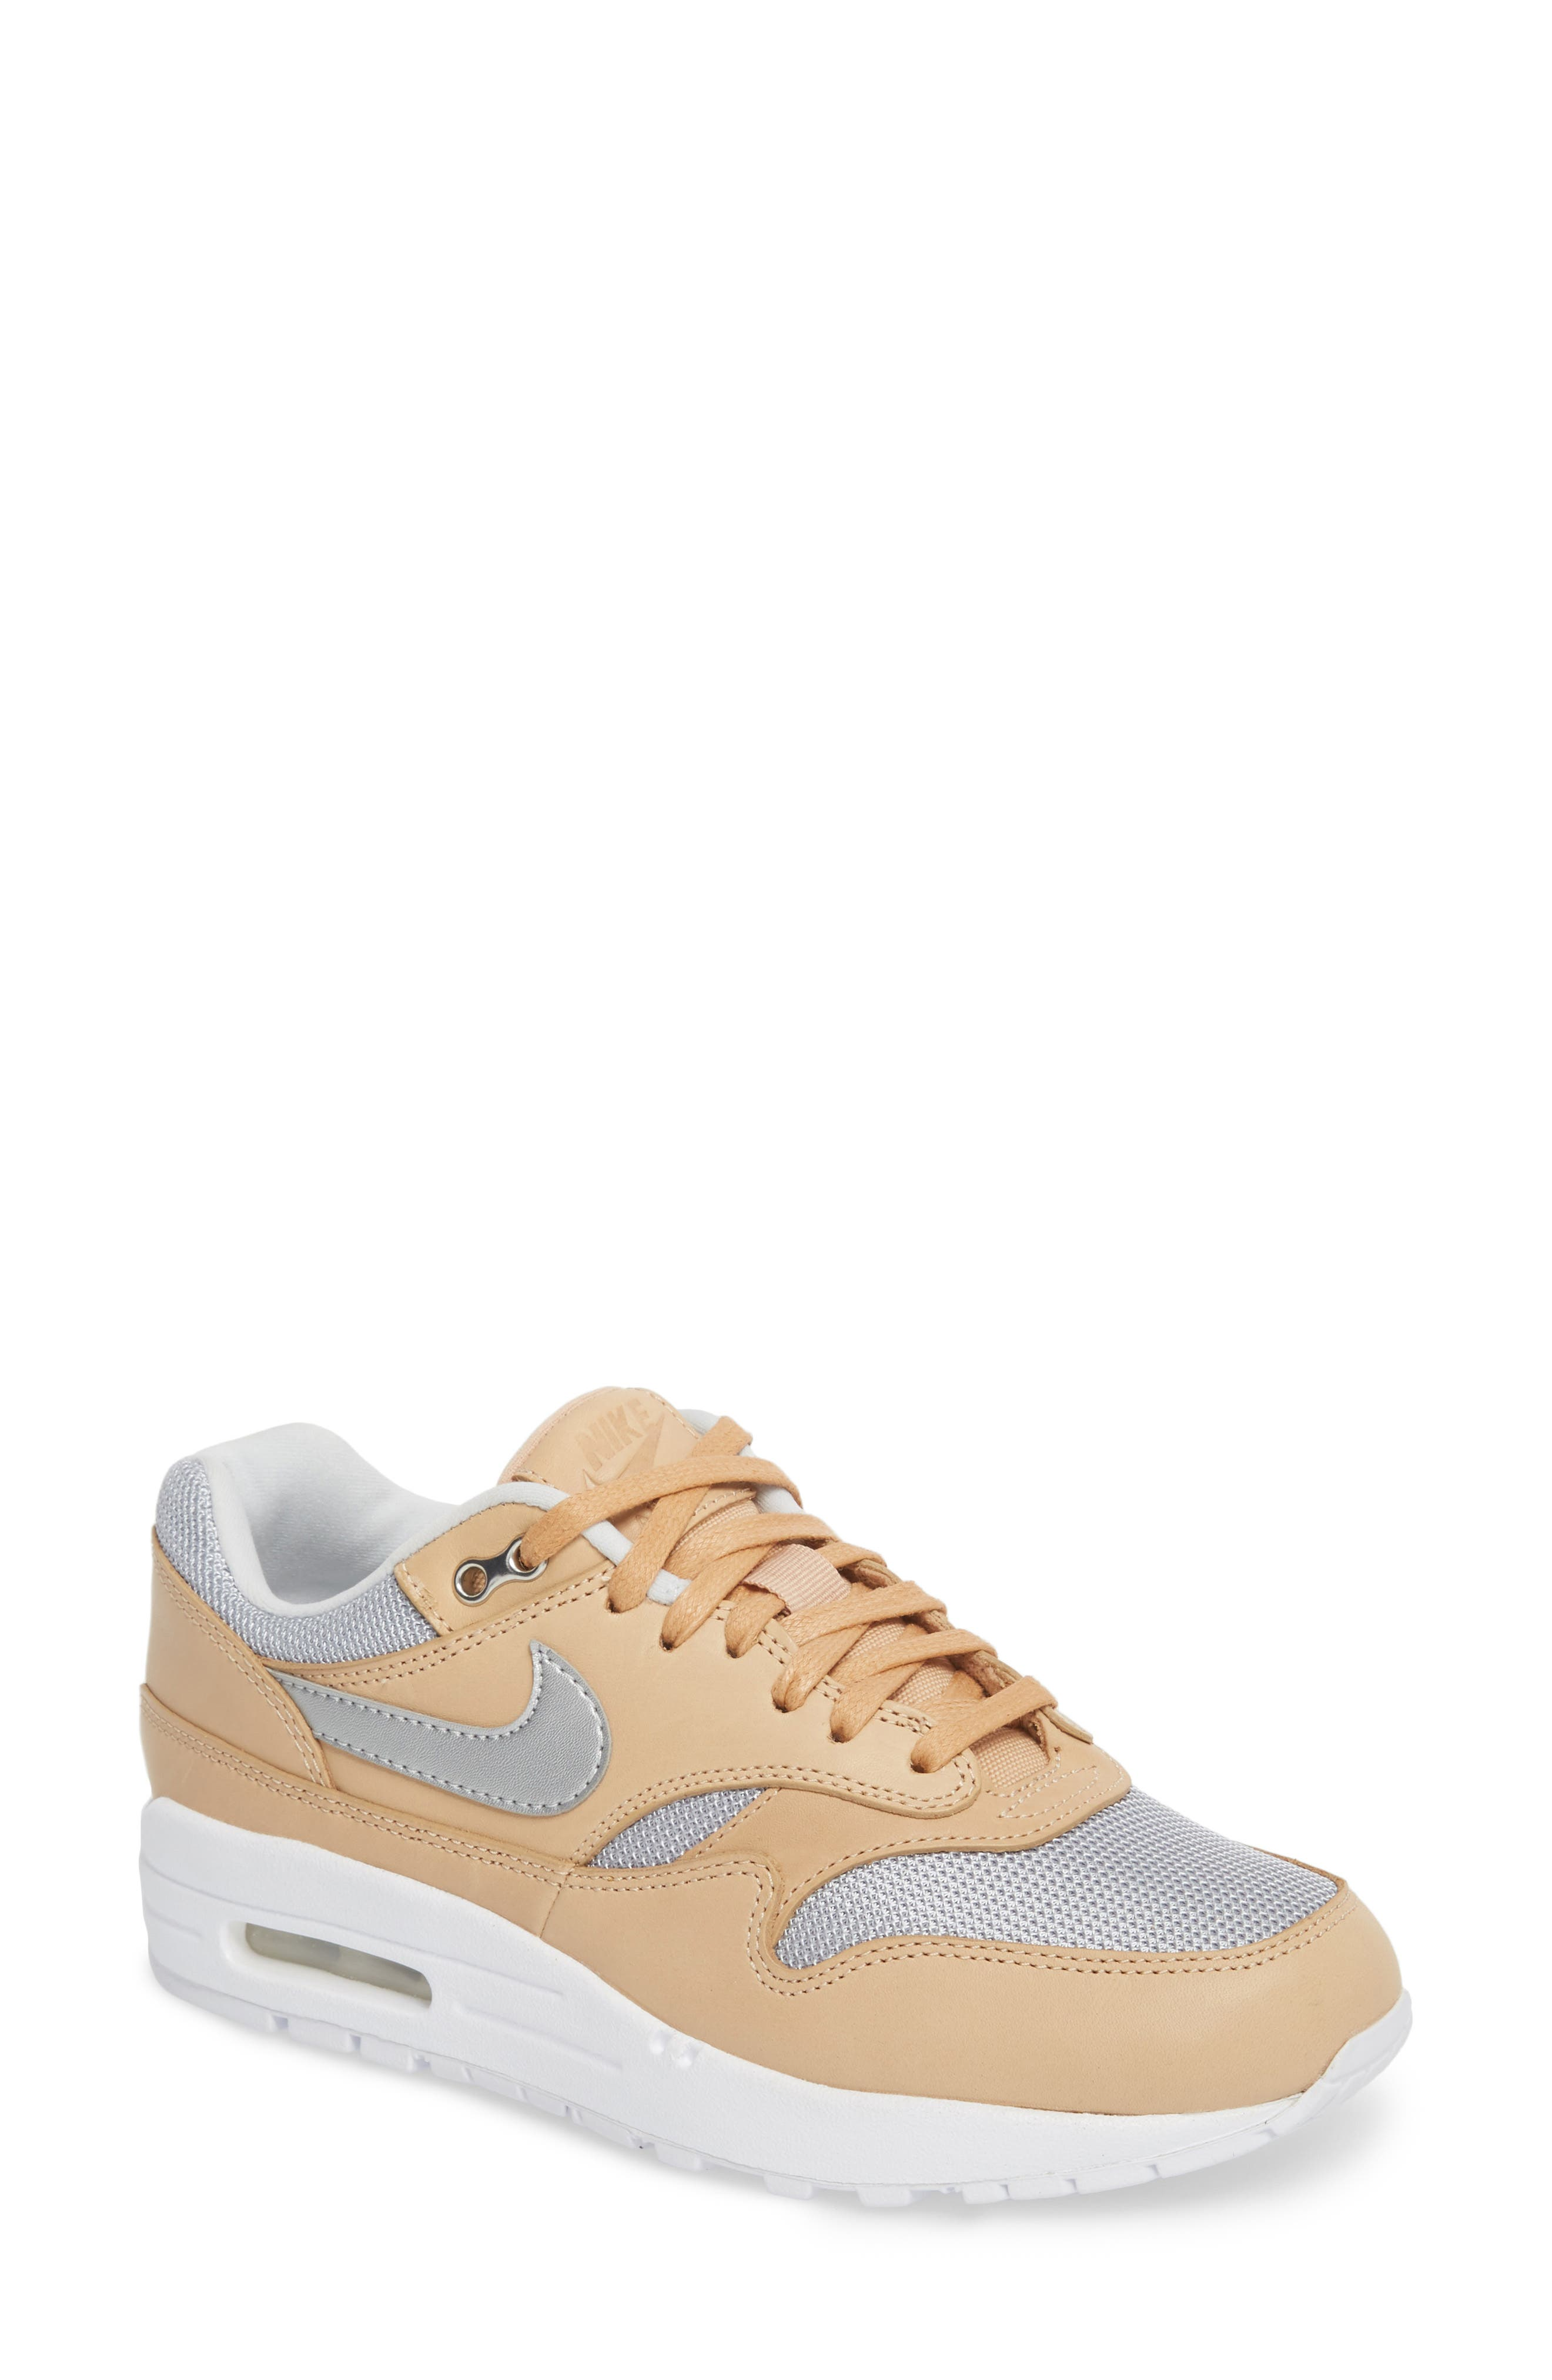 Air Max 1 SE Premium Sneaker,                         Main,                         color, 250